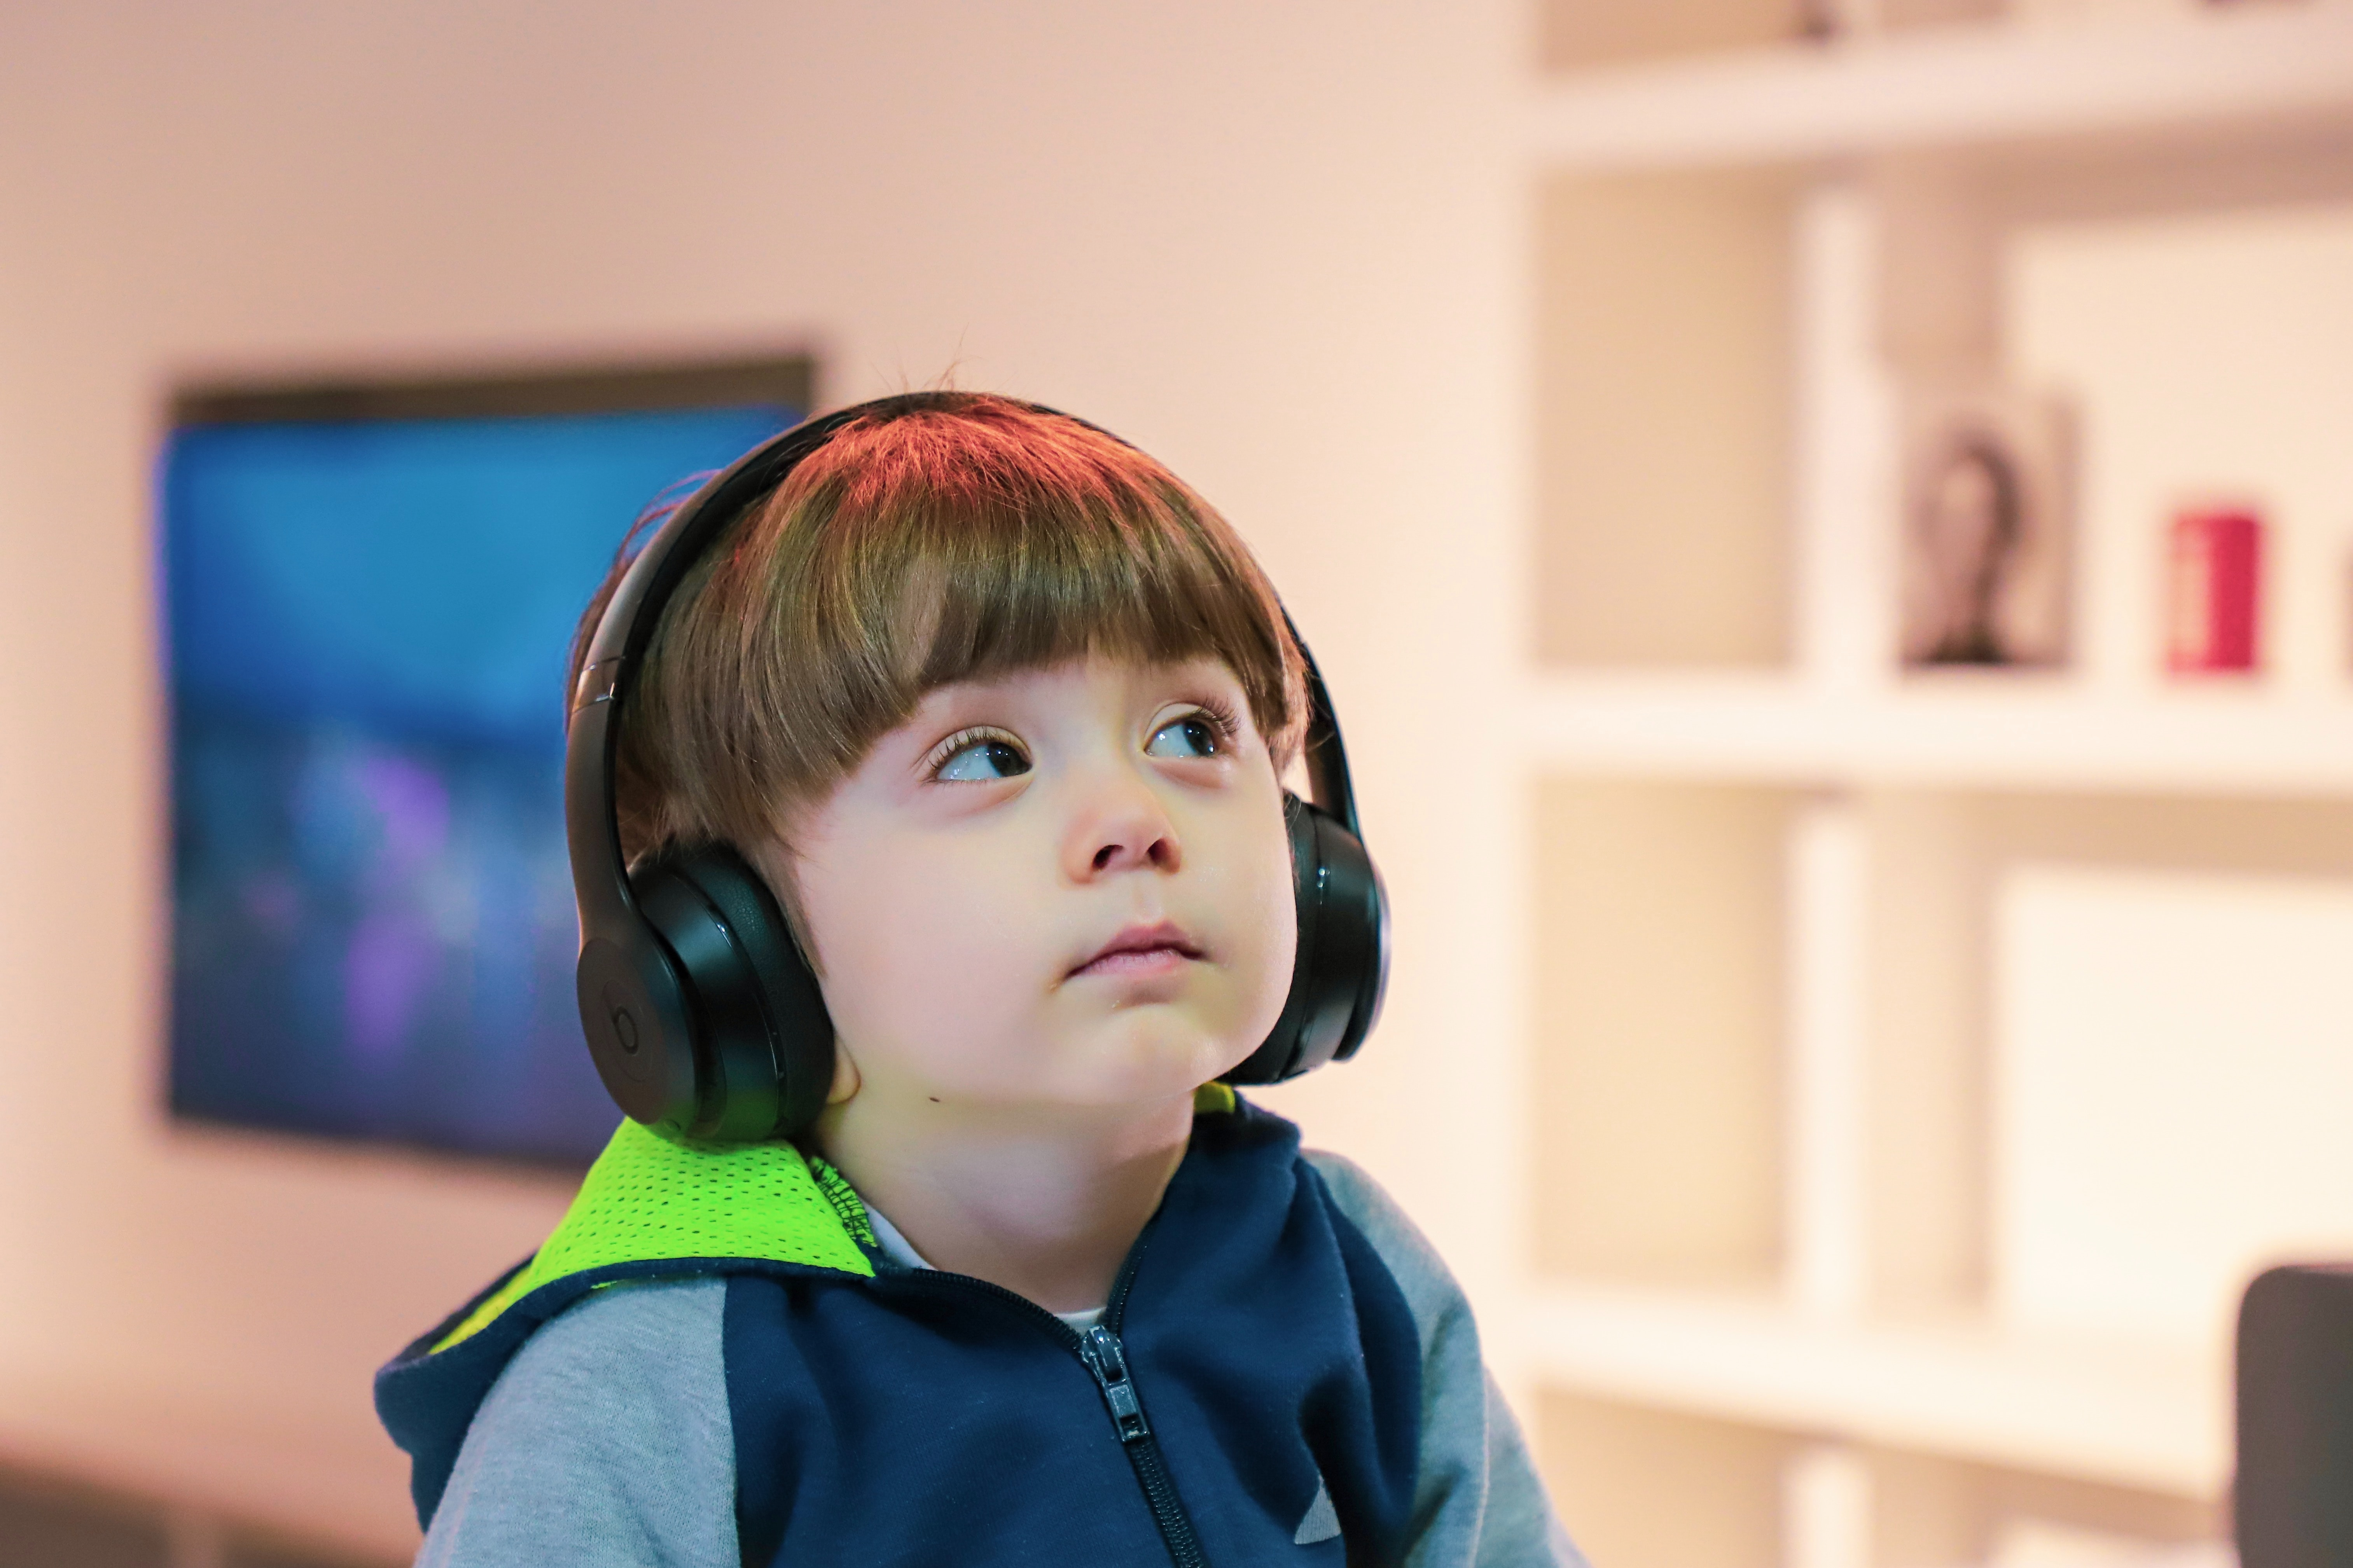 child-listening-to-web-content-with-headphones-photo-by-alireza-attari